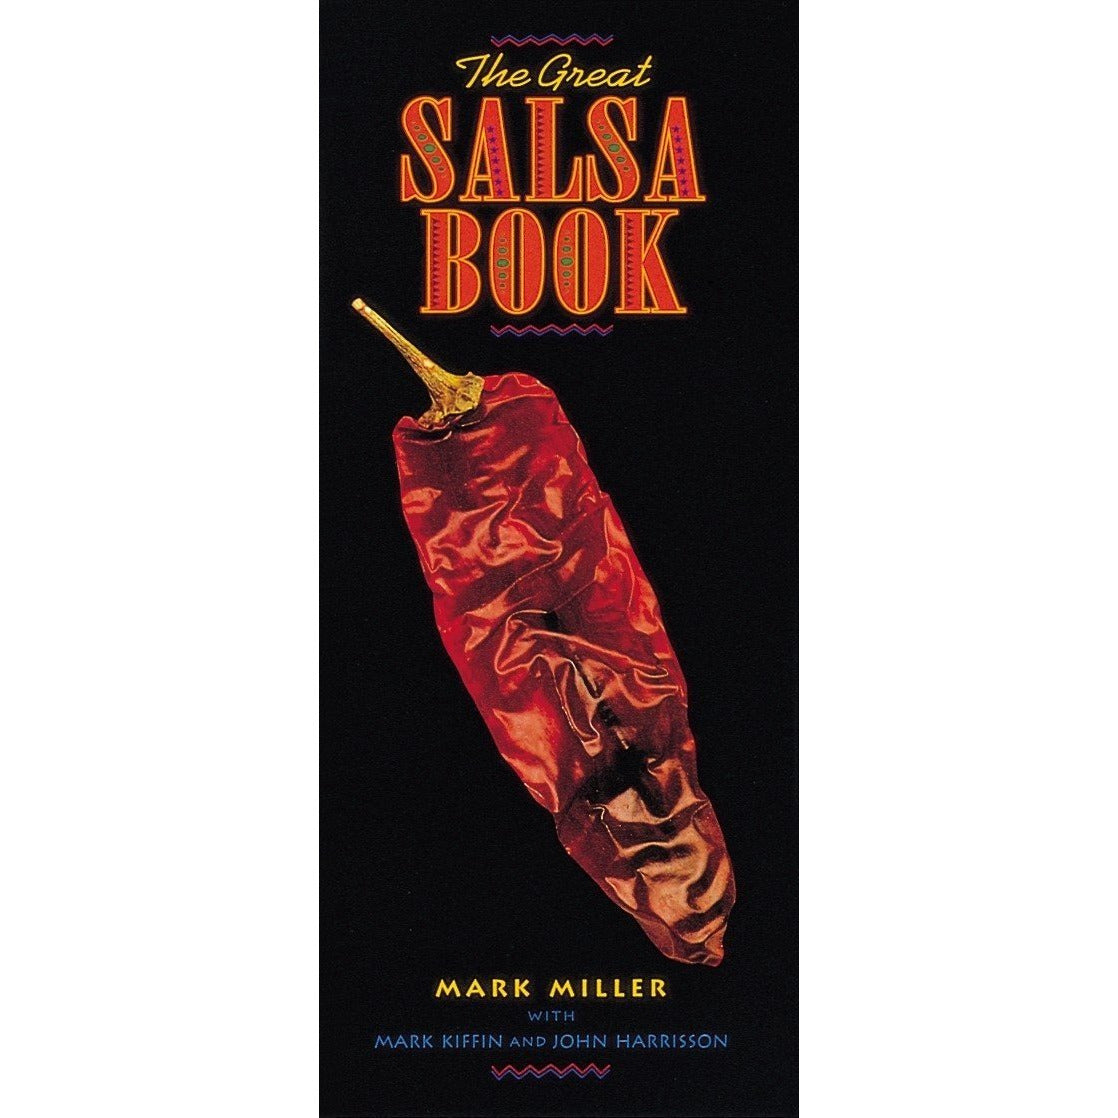 Book - The Great Salsa Book